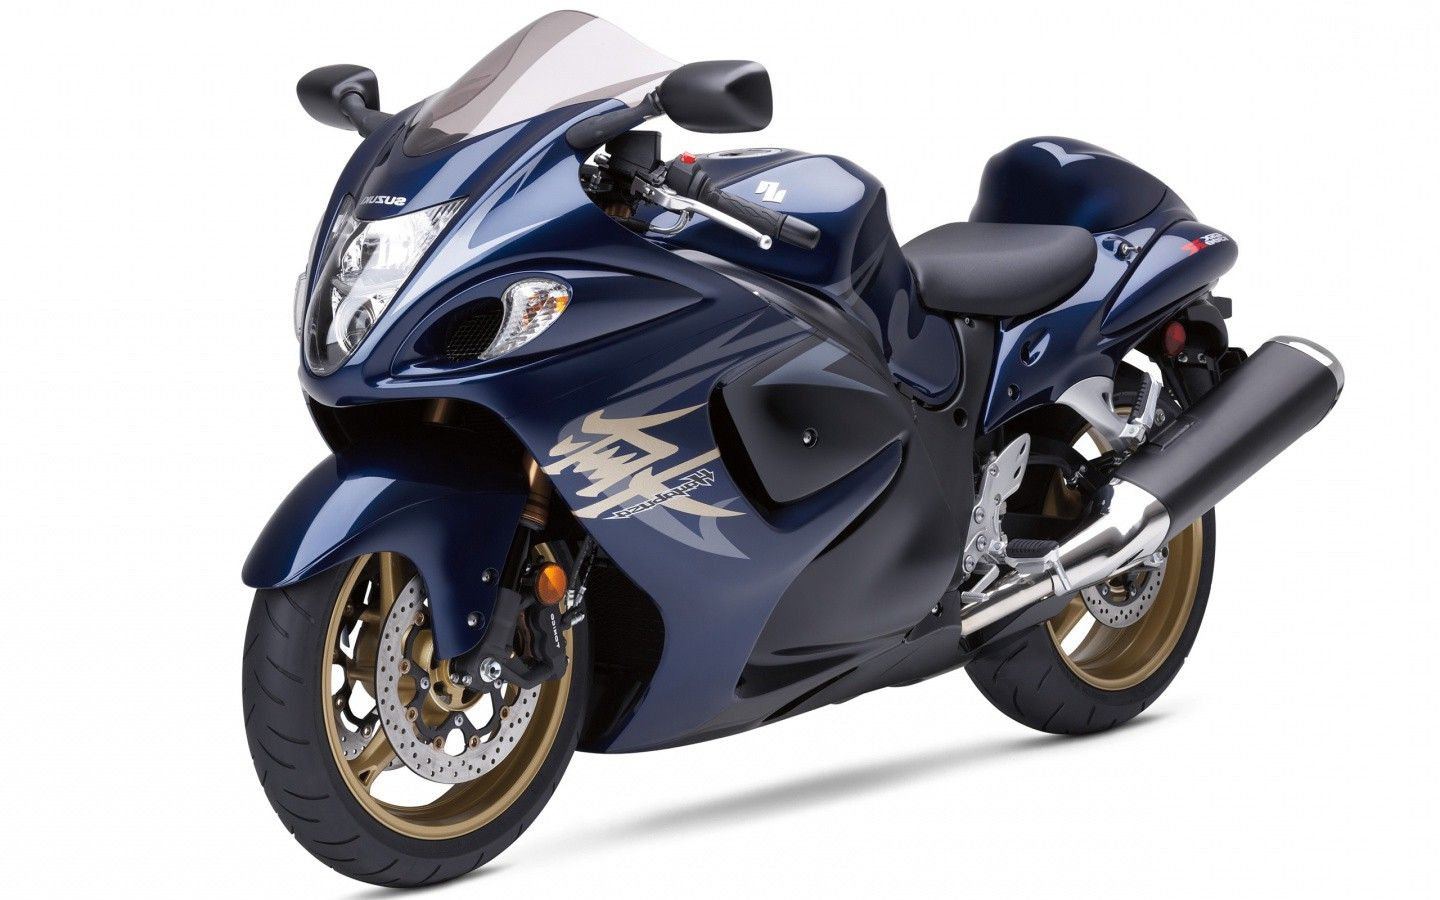 hayabusa suzuki bike blue color hd wallpaper Suzuki Bike 1440x900